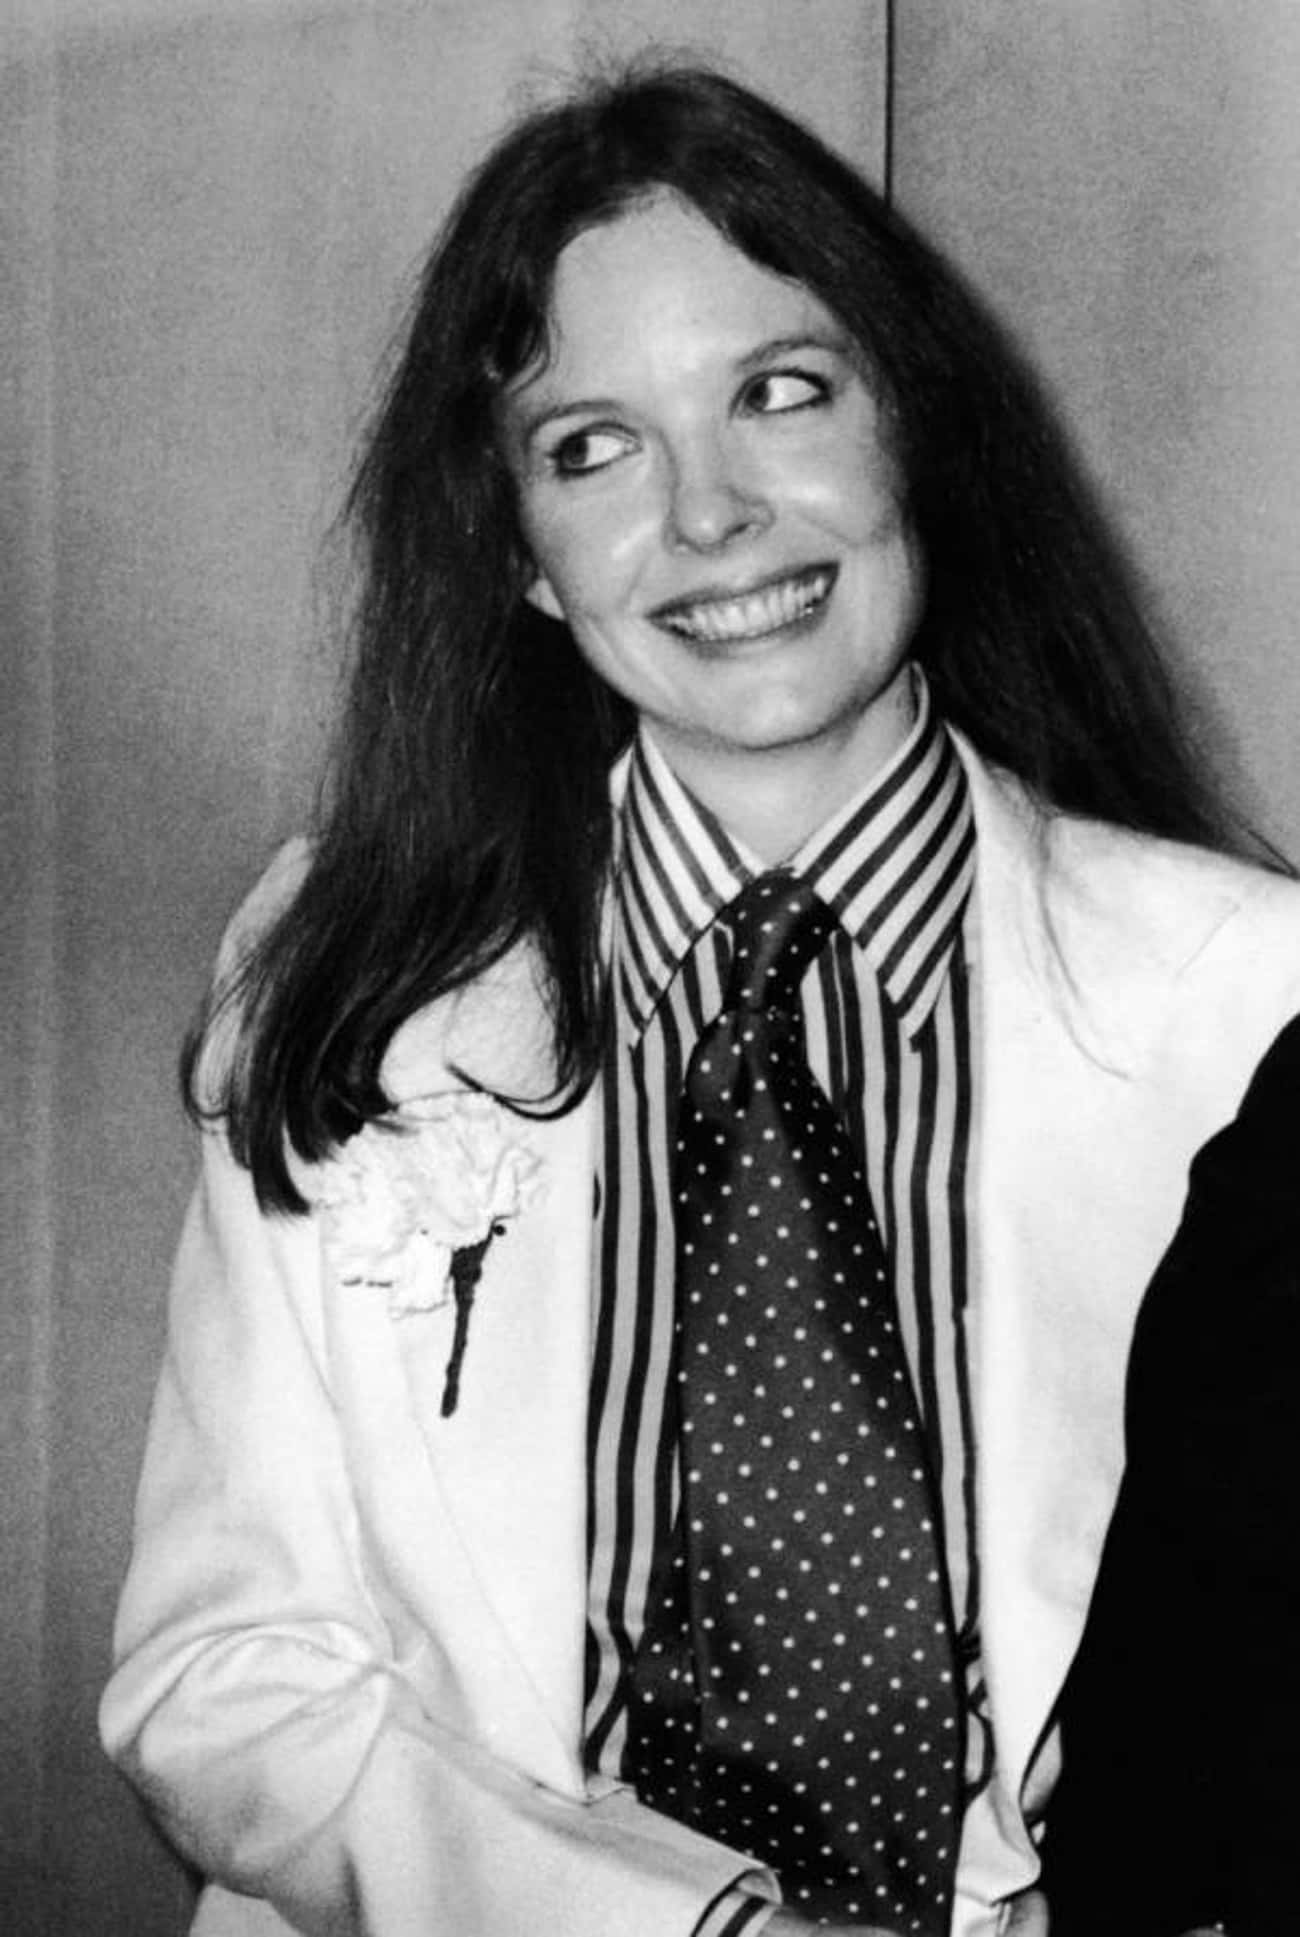 Young Diane Keaton in a White  is listed (or ranked) 4 on the list 20 Pictures of Young Diane Keaton